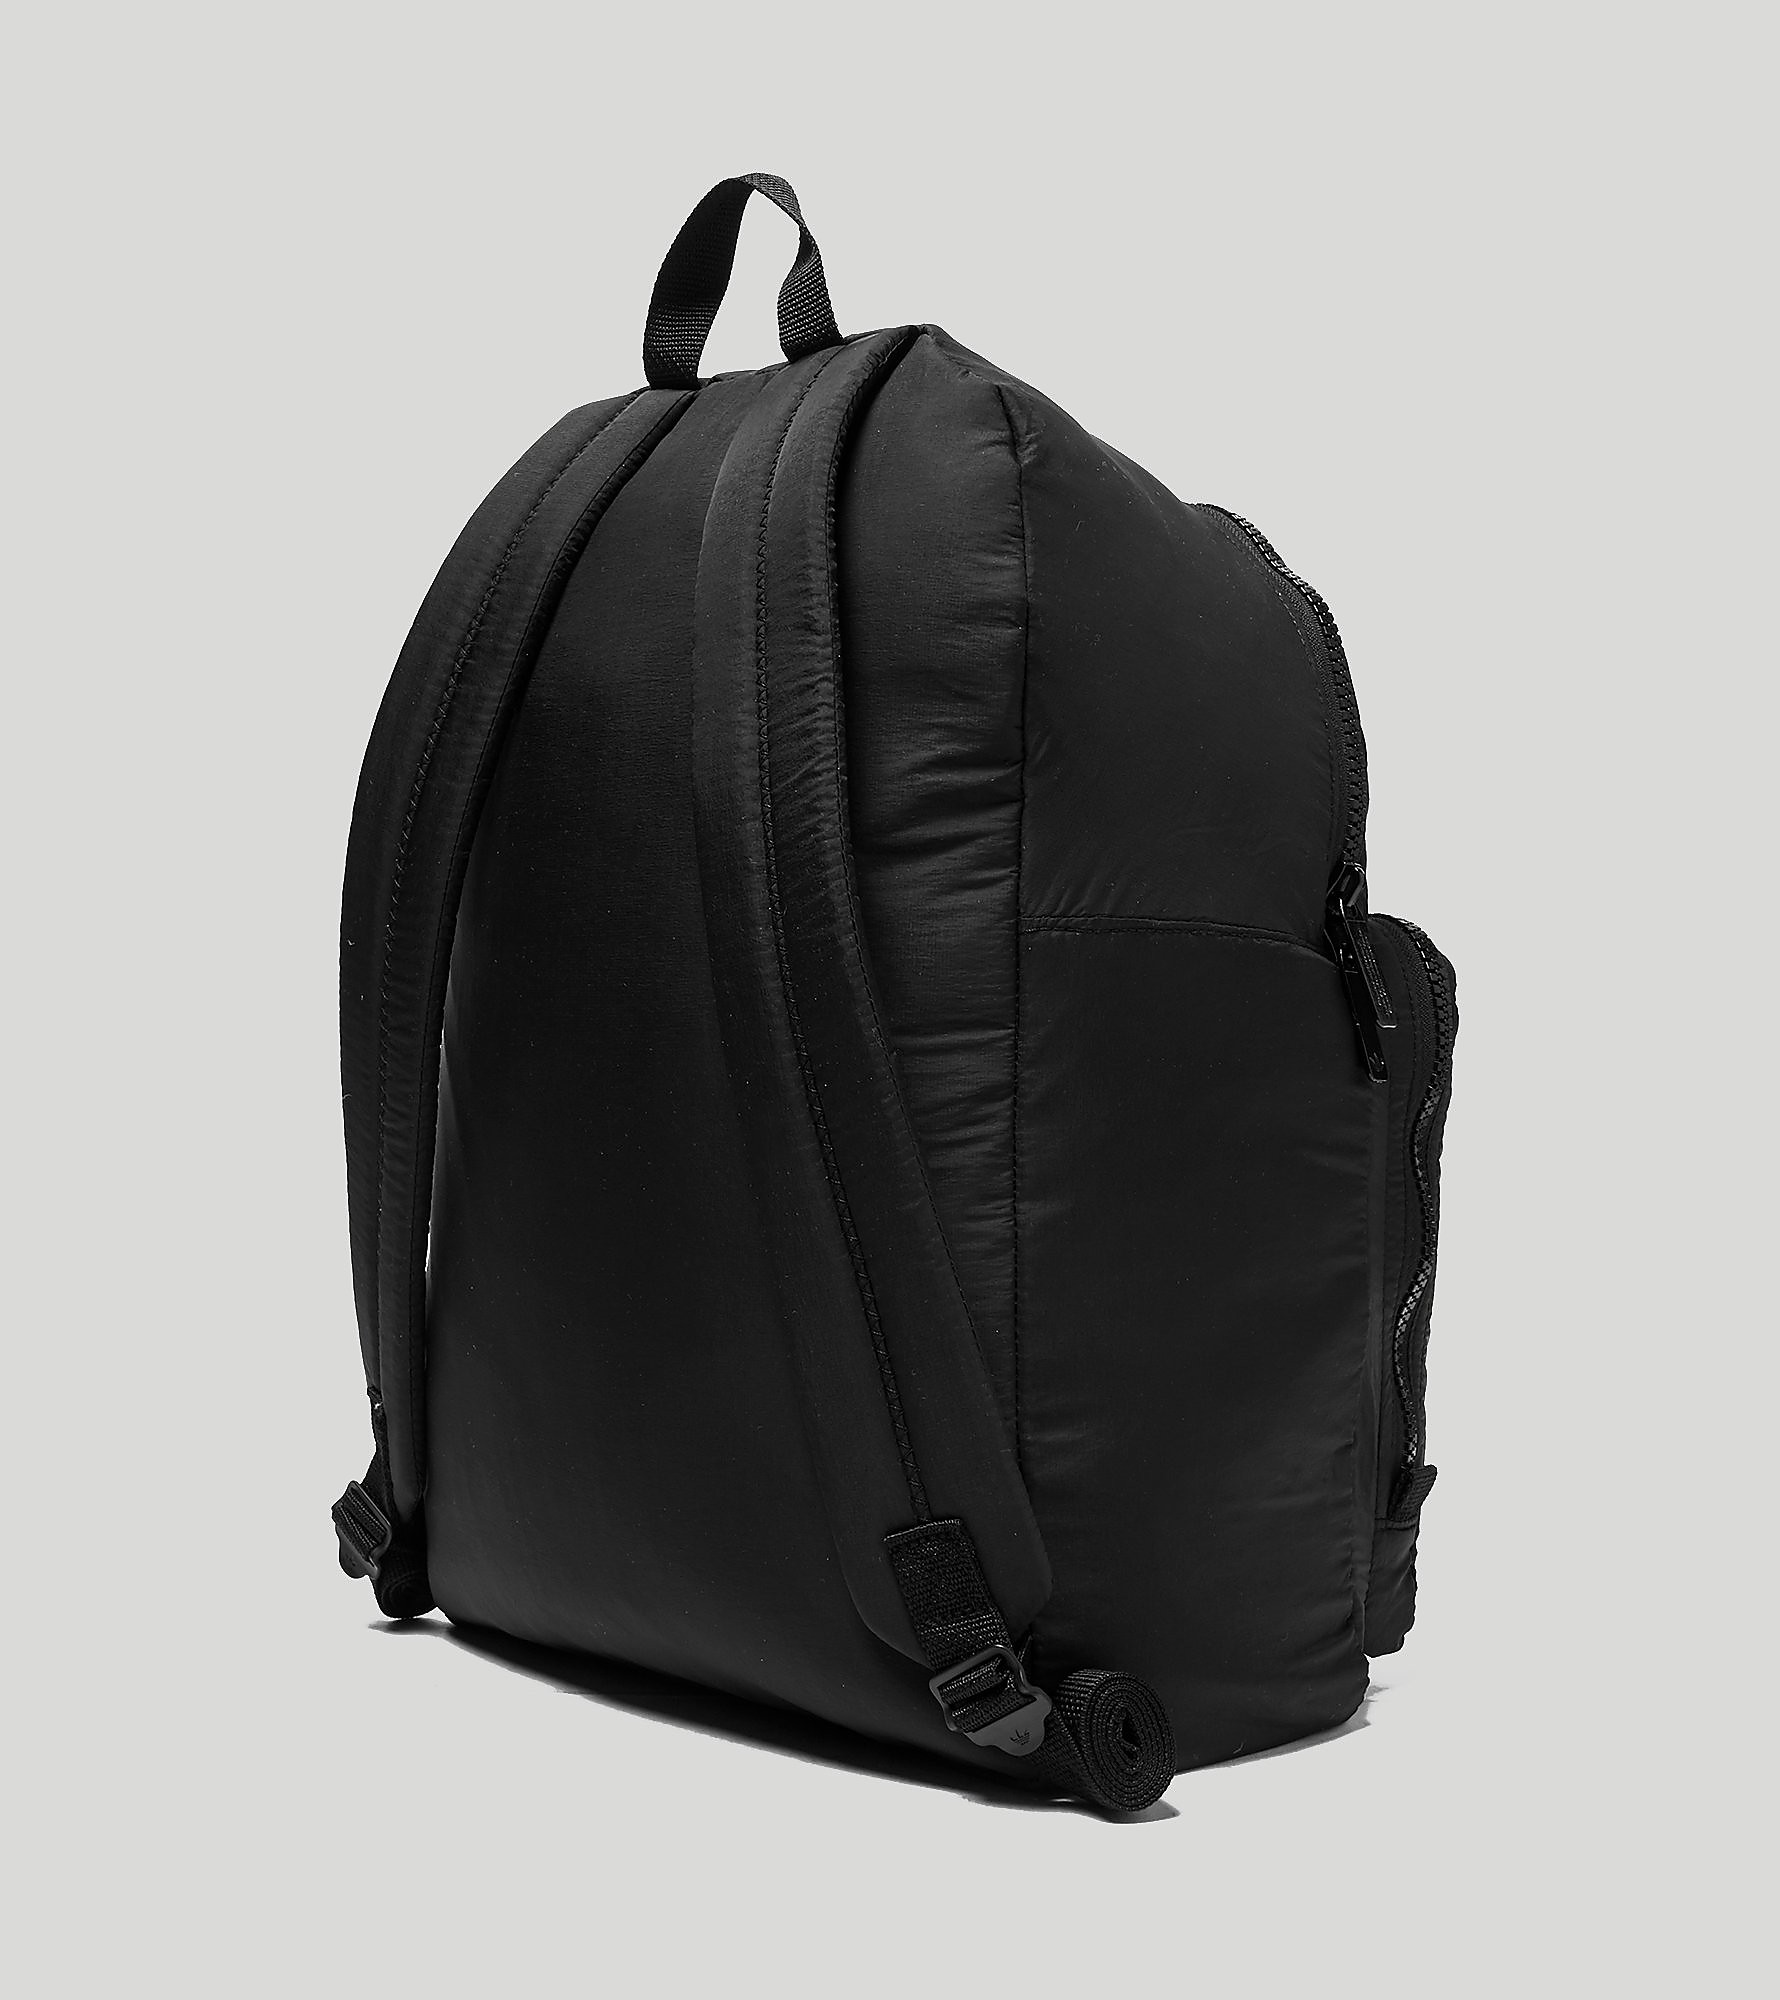 adidas Originals EQT Backpack